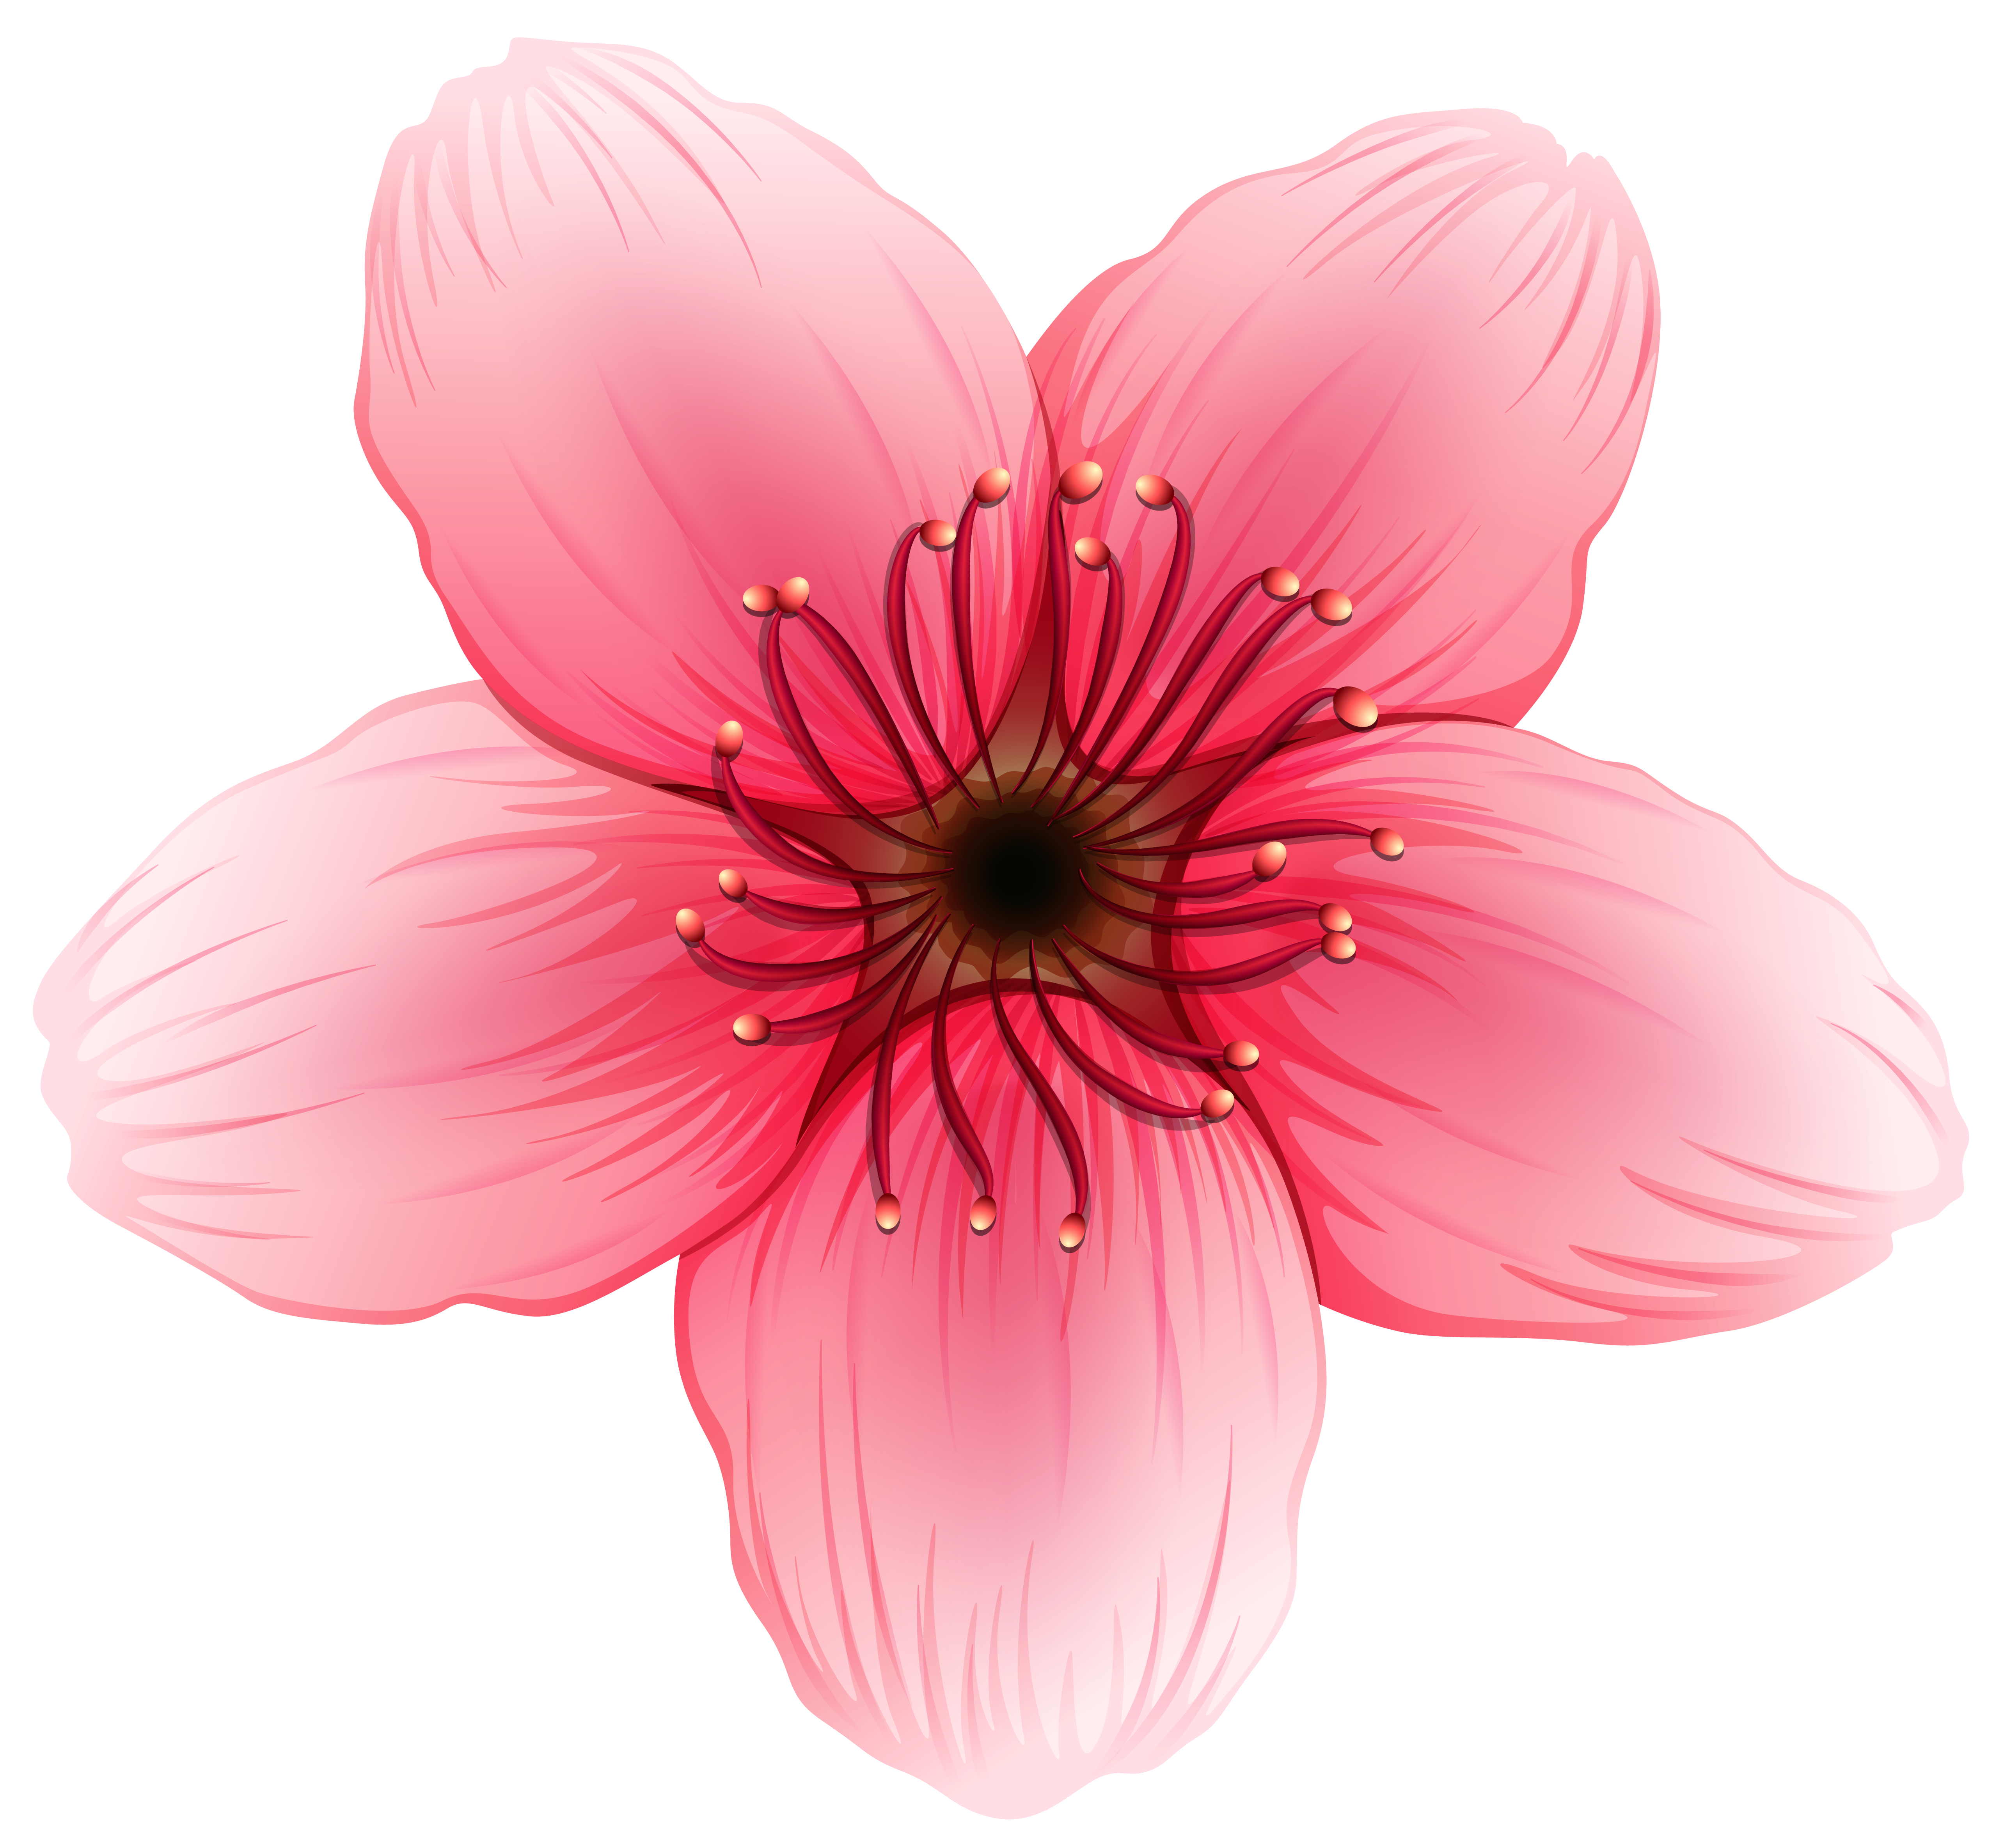 Flower png. Clipart image gallery yopriceville